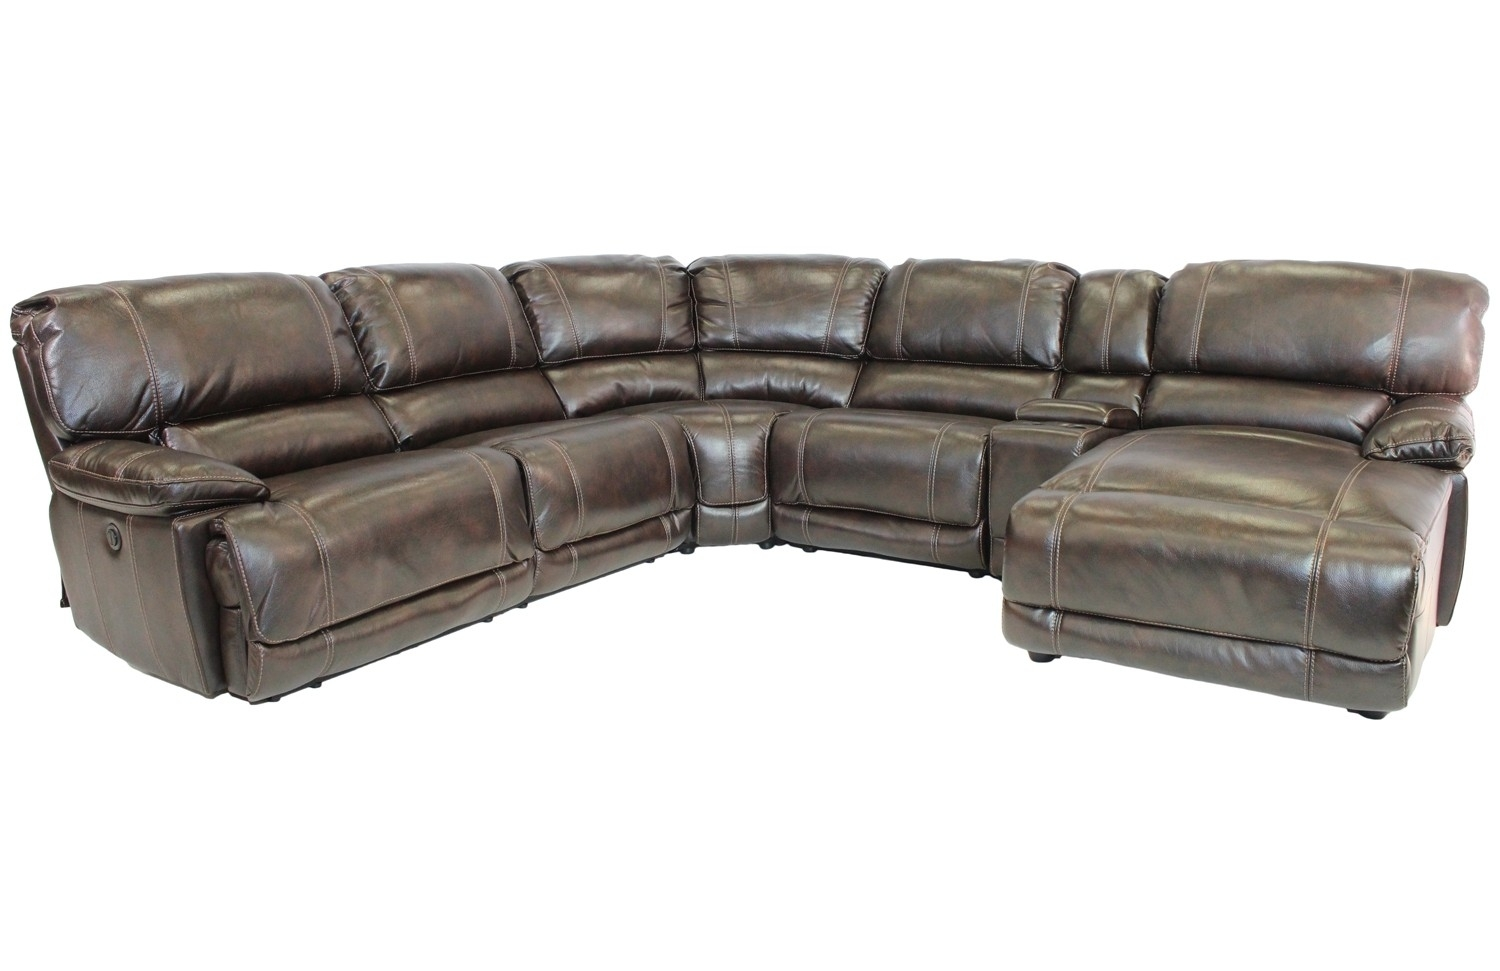 Sectional Sofas | Save Mor Online And In Store Throughout Marcus Grey 6 Piece Sectionals With Power Headrest & Usb (View 14 of 25)